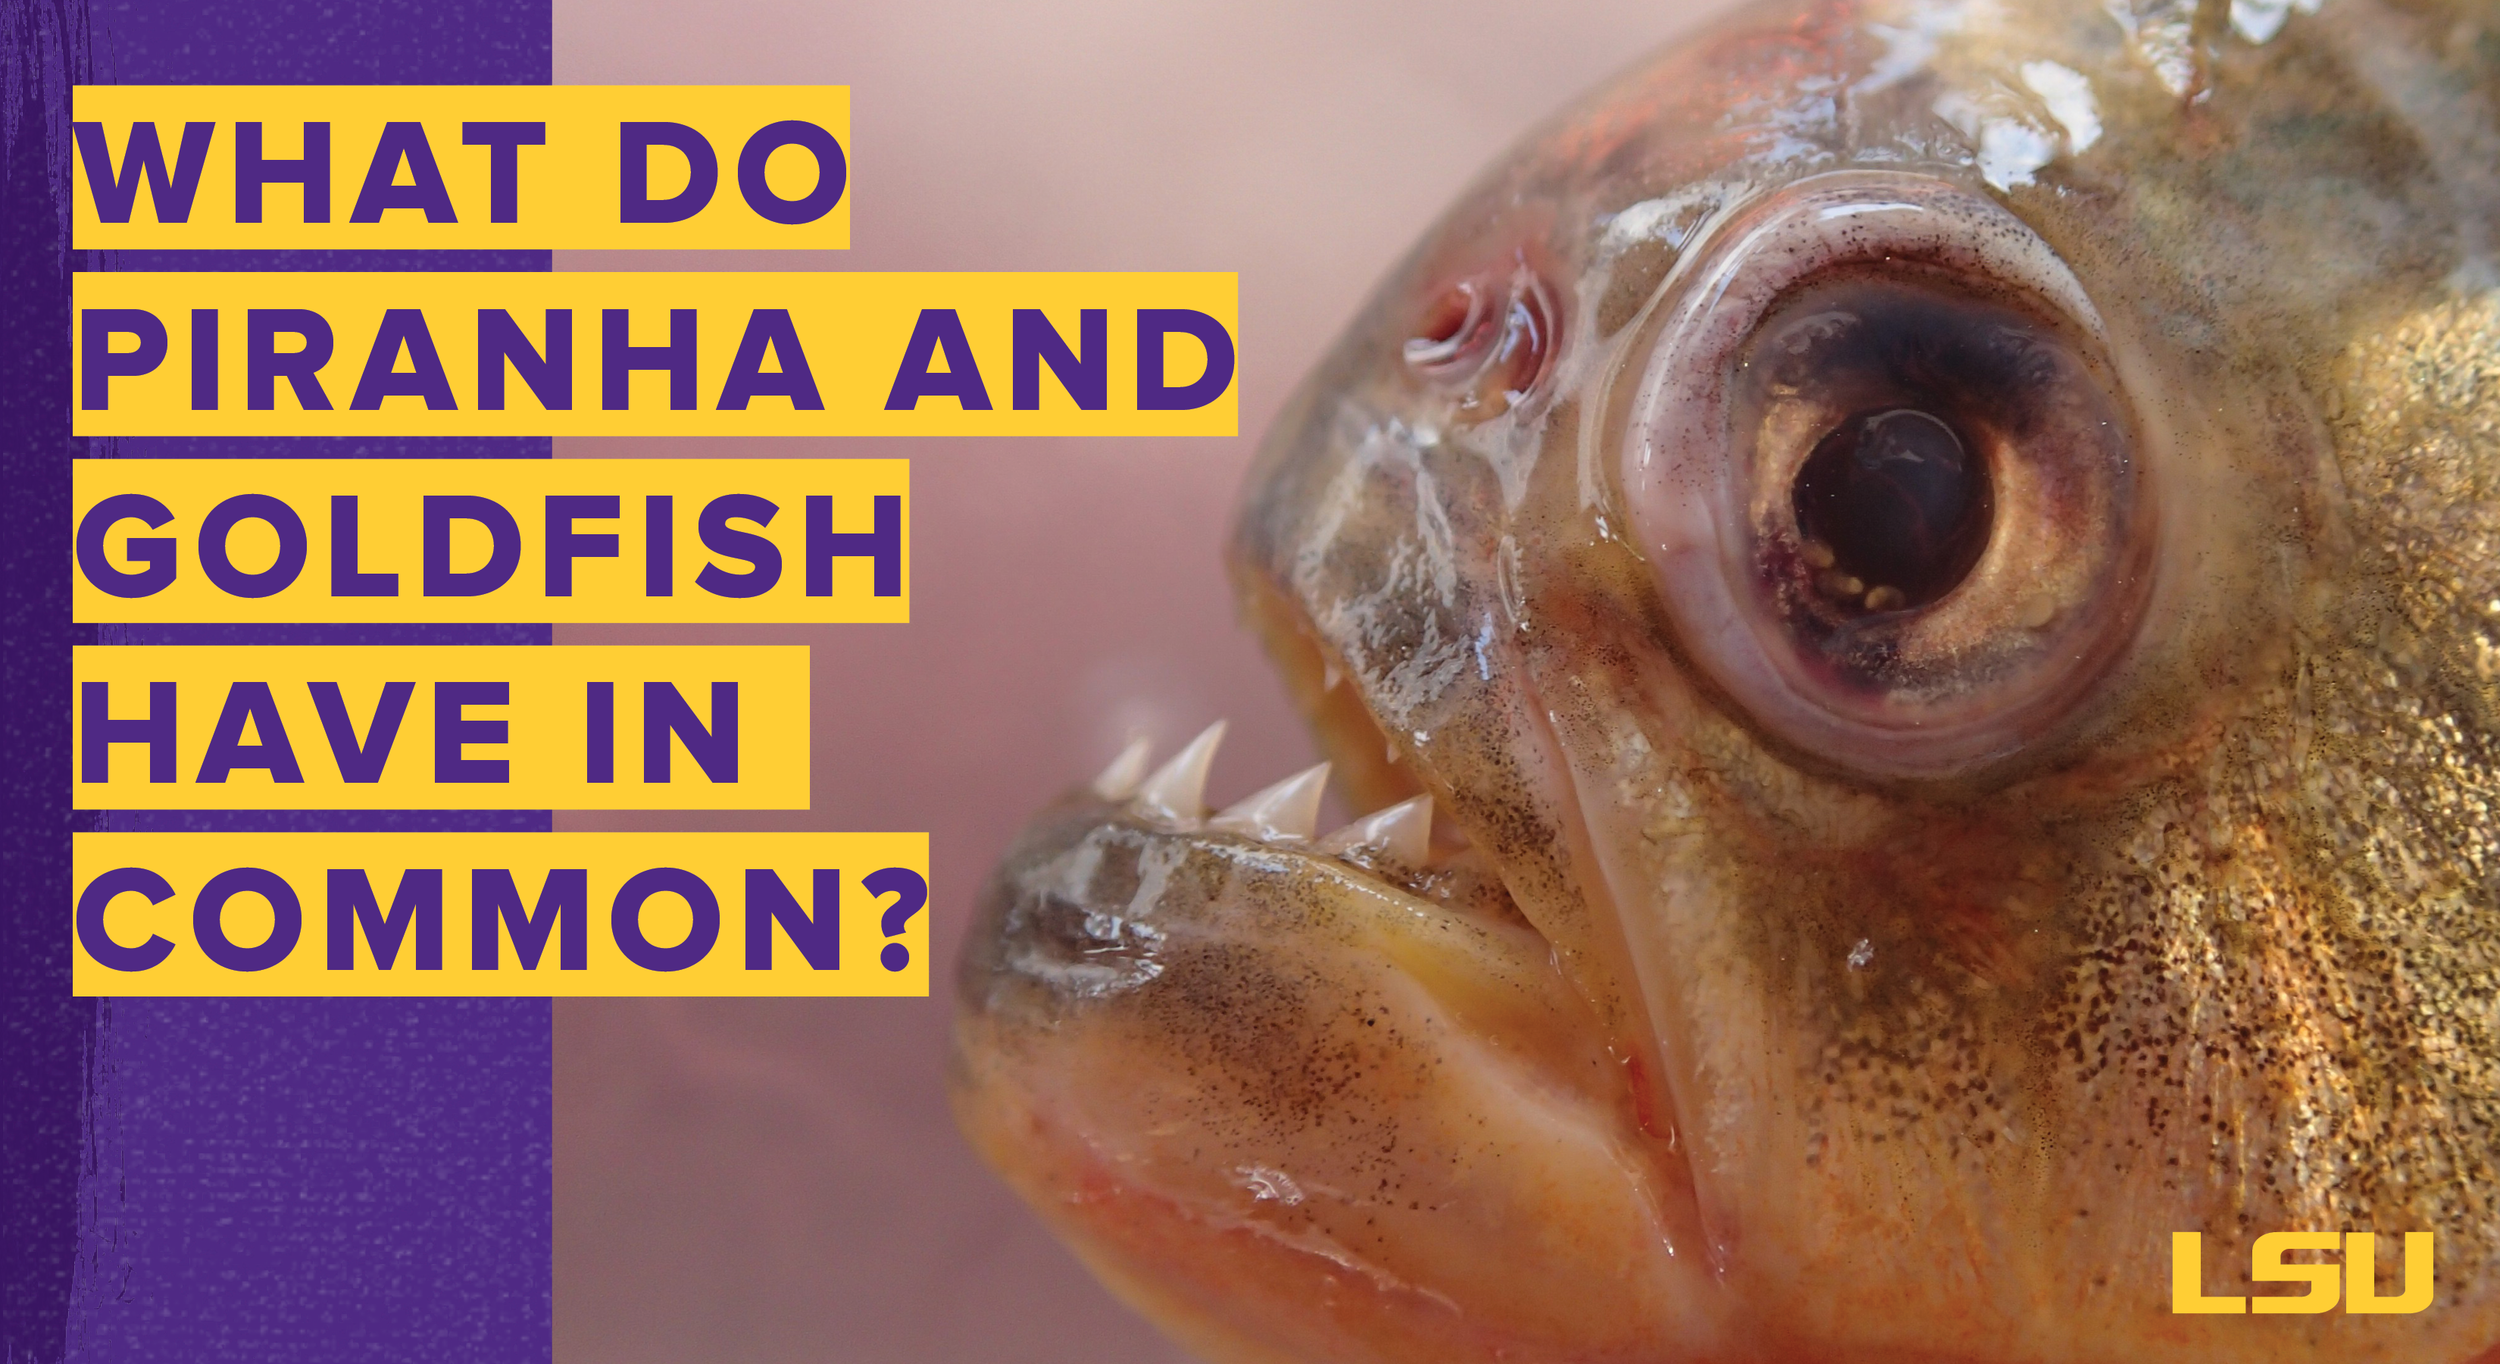 Graphic: What do piranha and goldfish have in common?